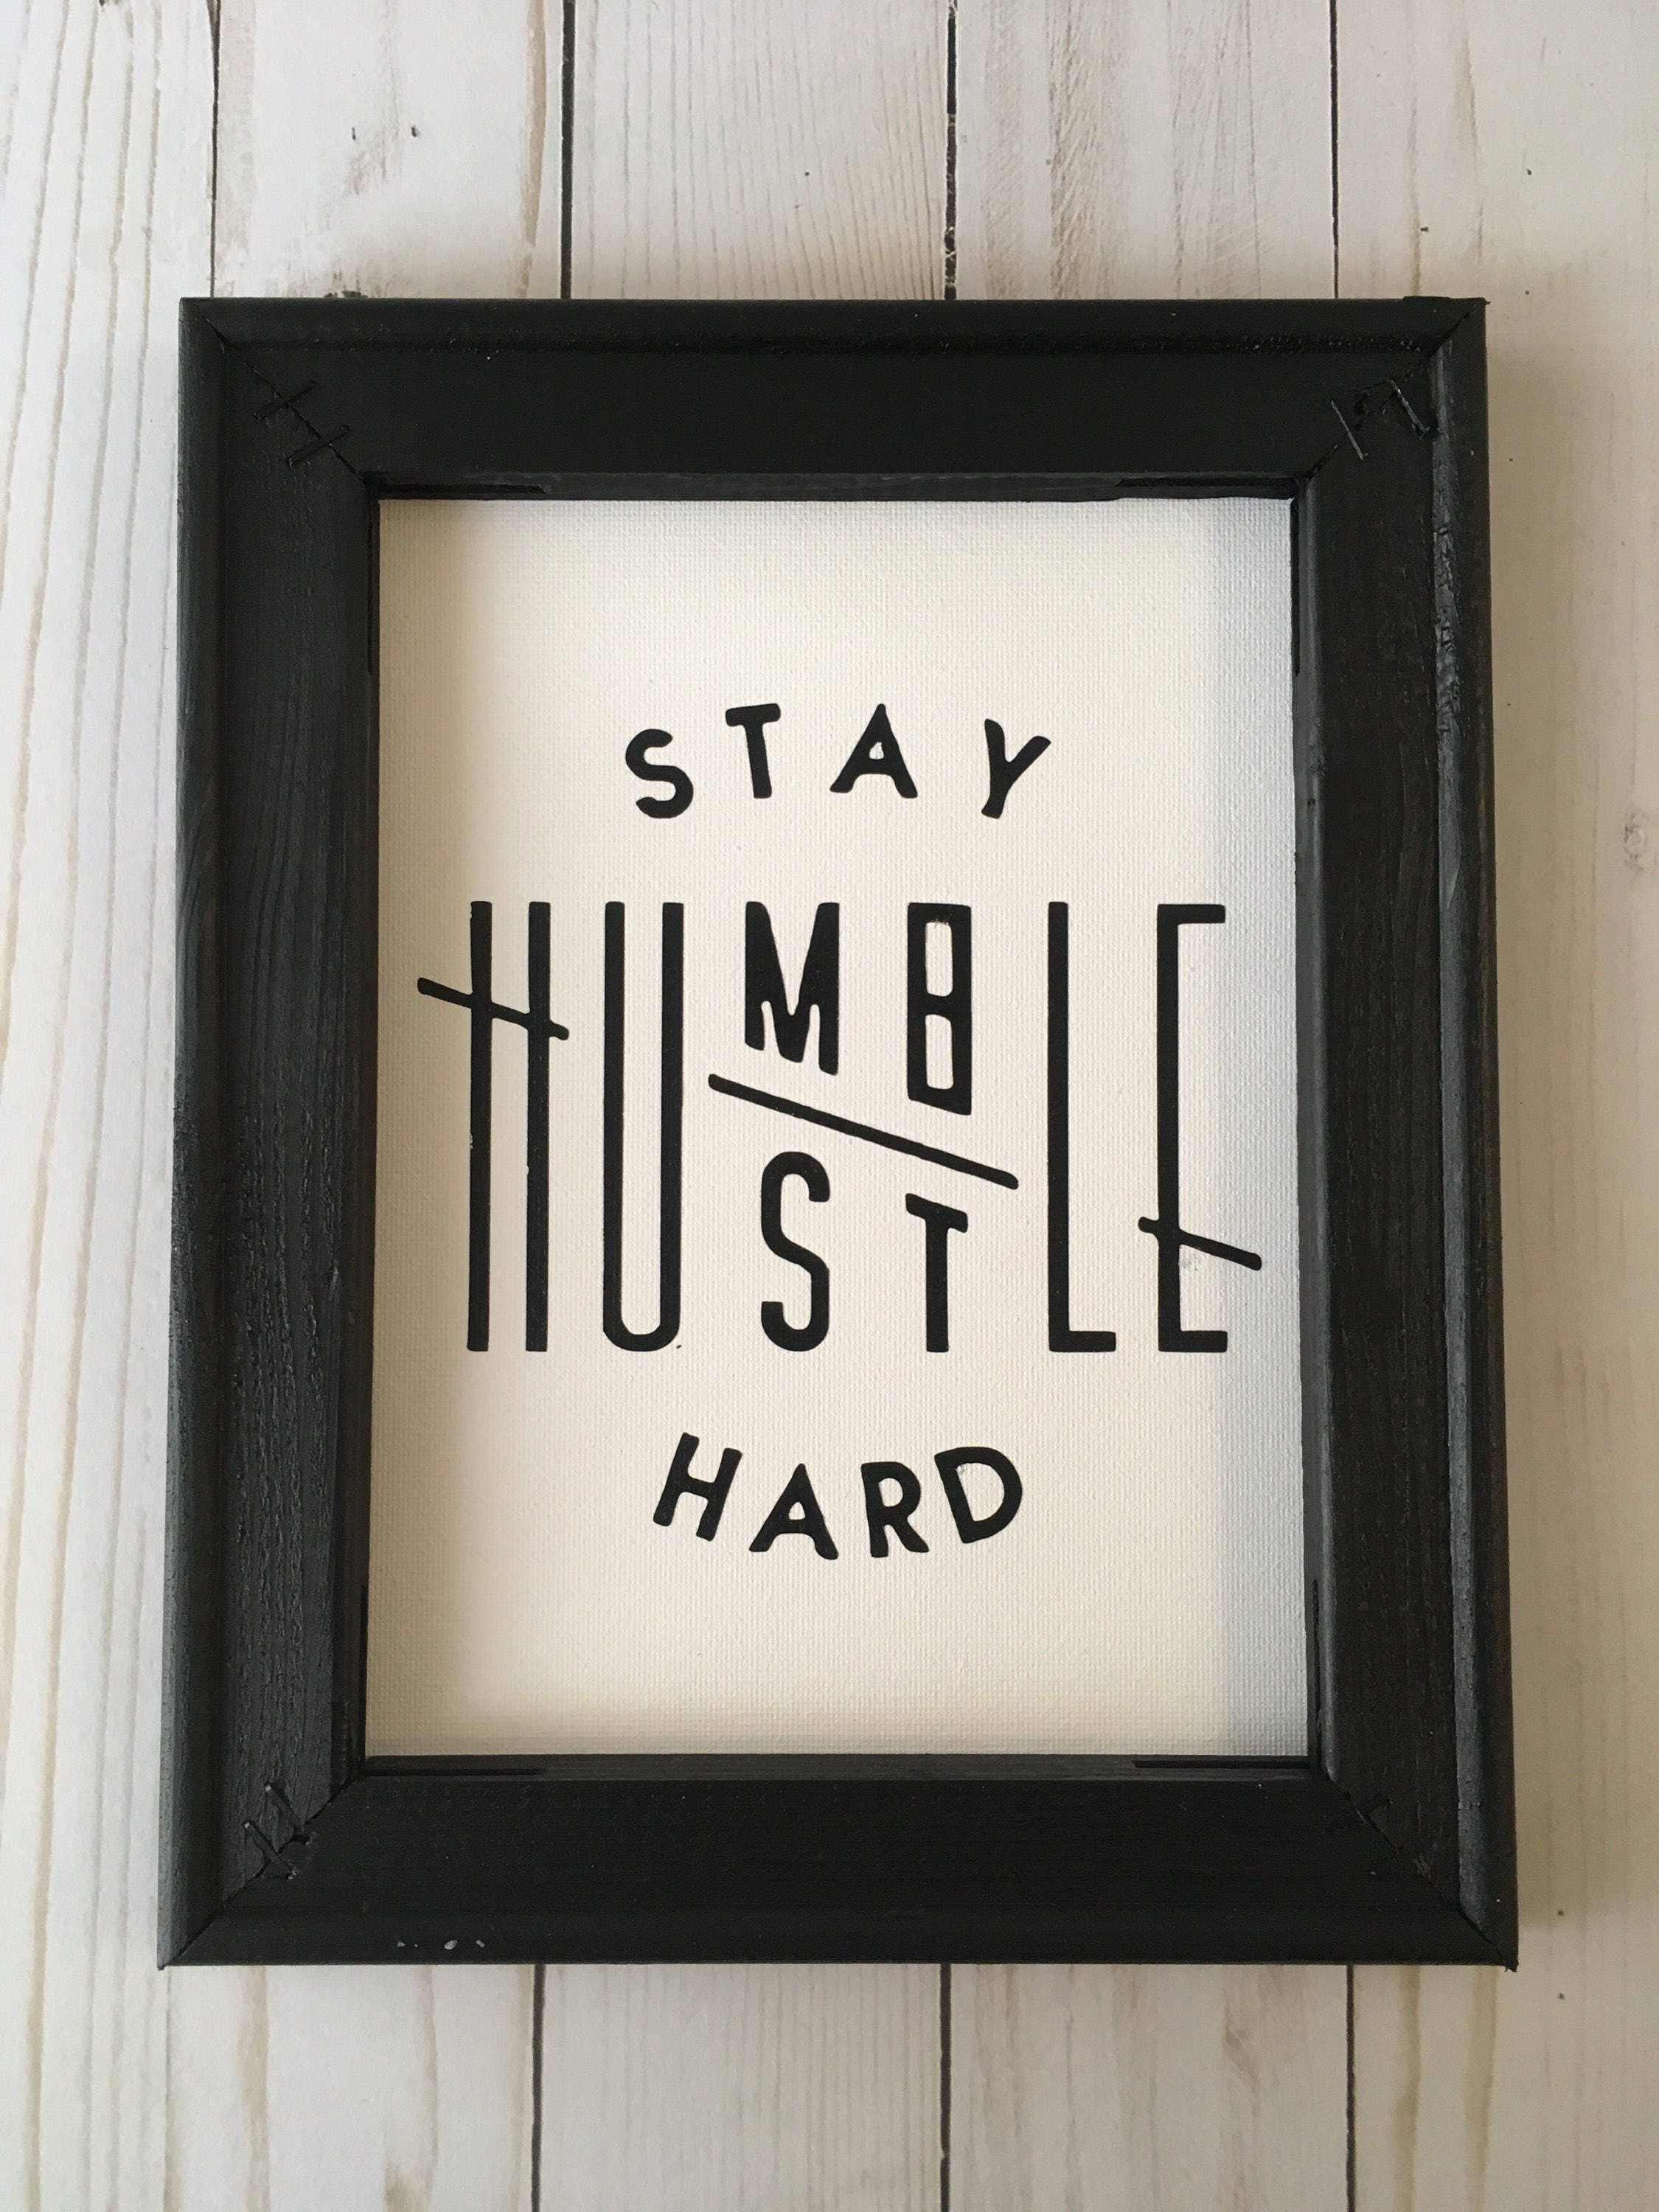 Stay Humble Hustle Hard Painting on Canvas with wood frame